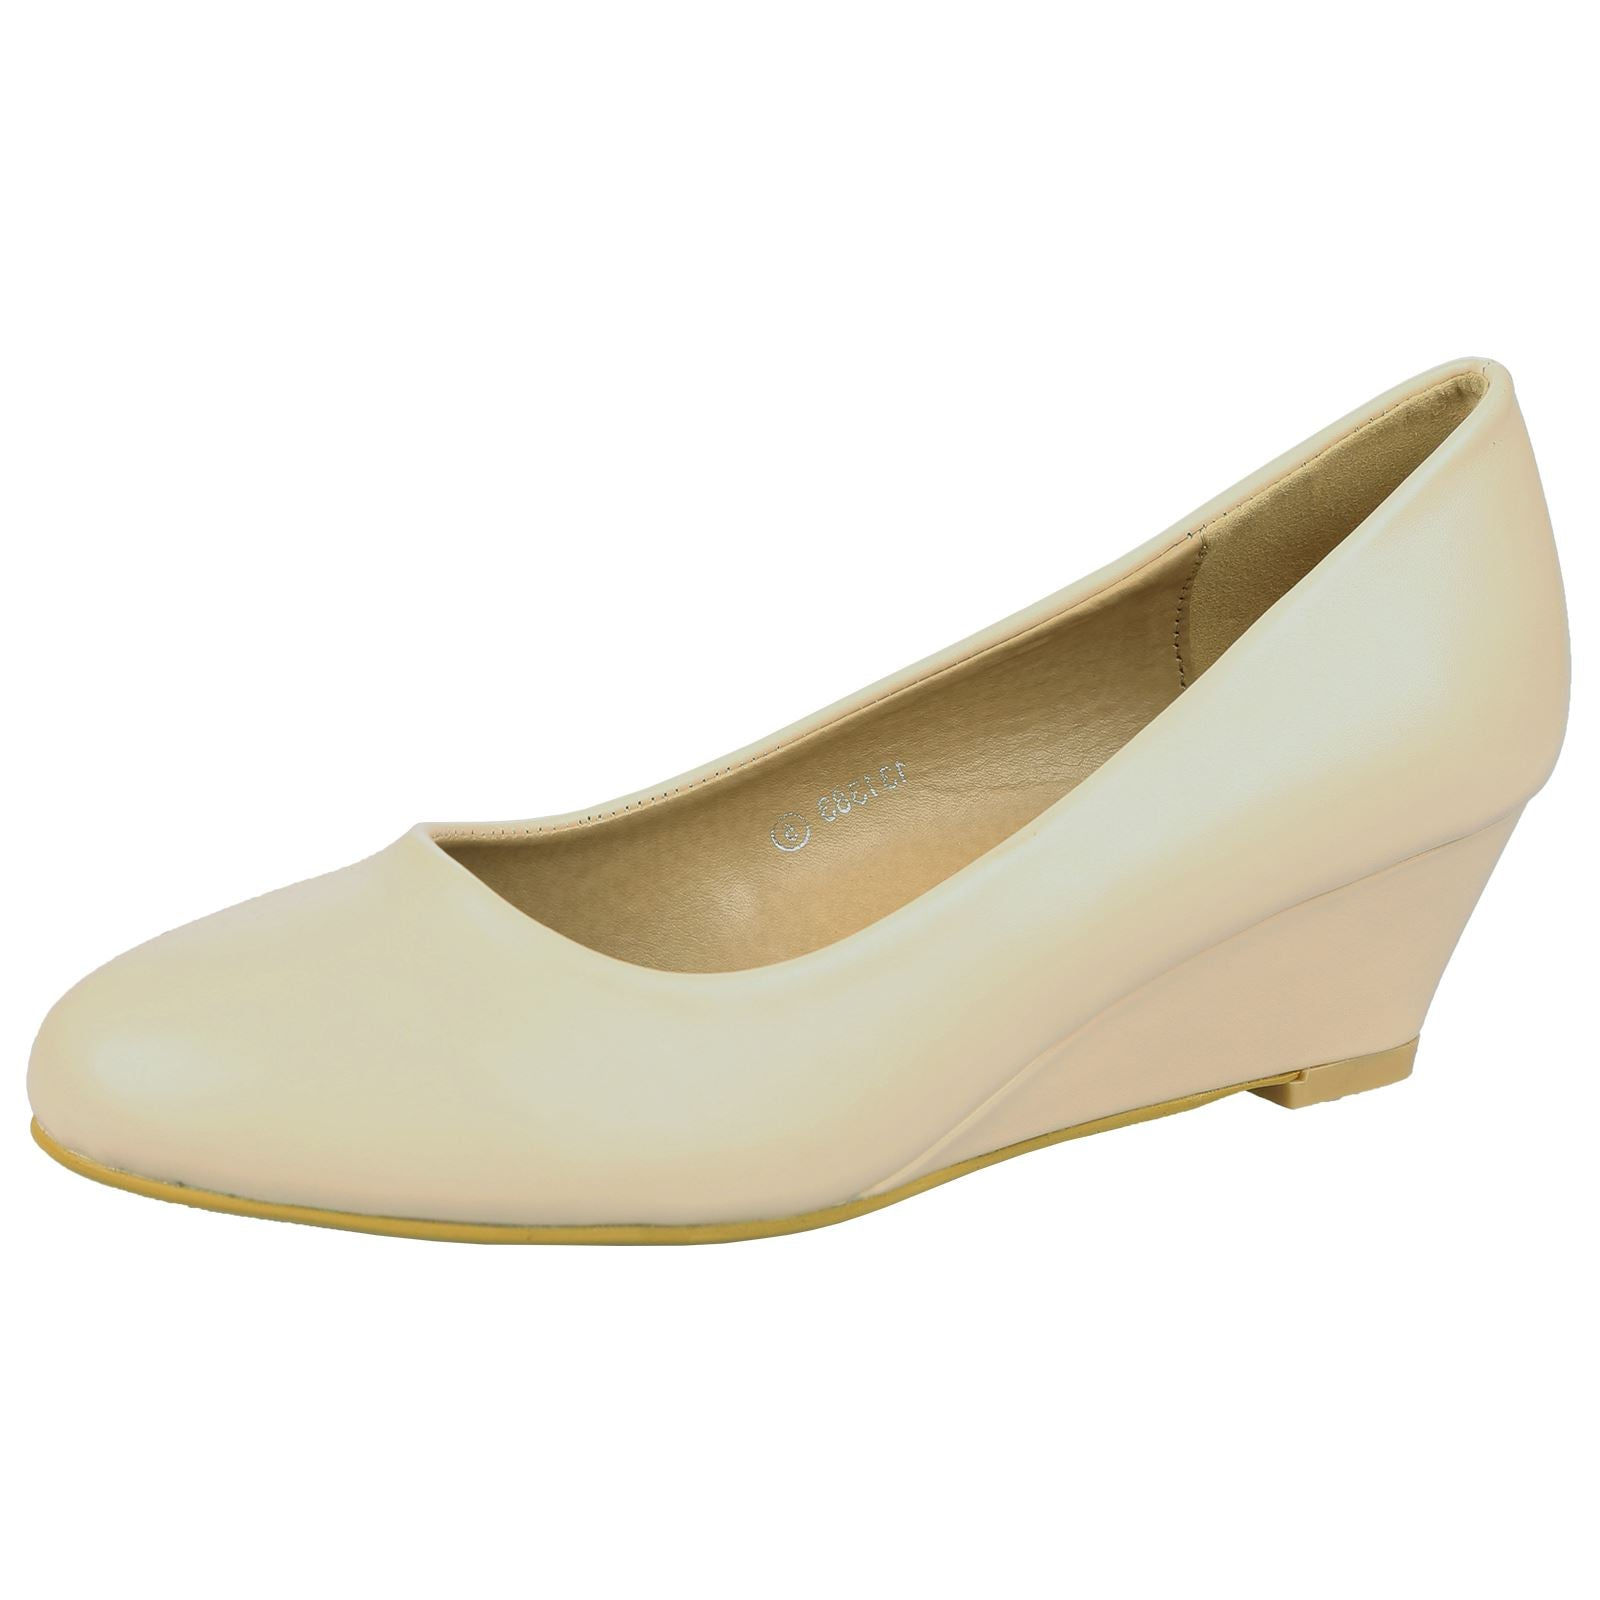 Wendy Low Wedge Court Shoes in Beige Nude Faux Leather